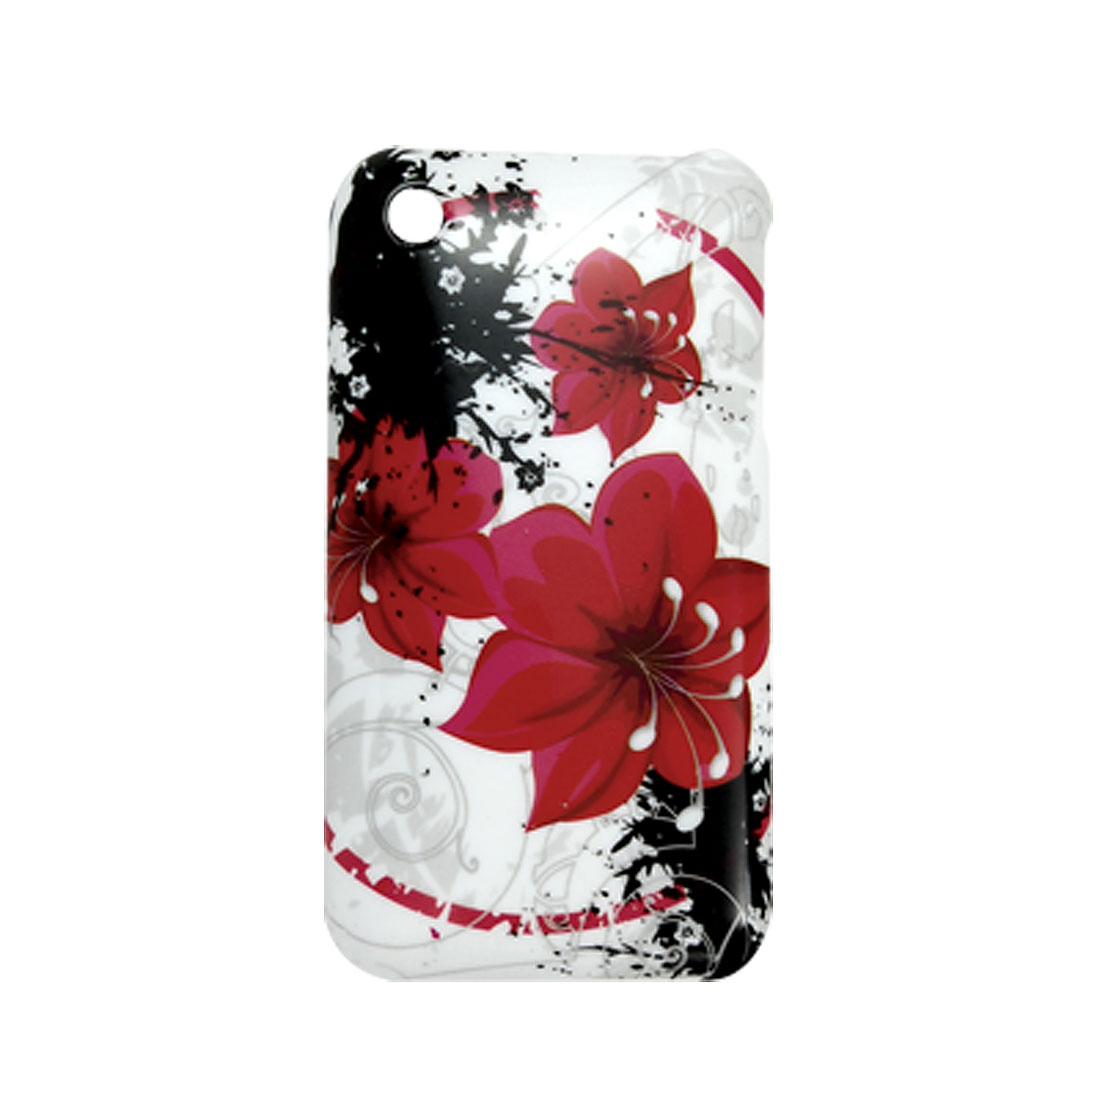 Red Flower Designs w Screen Protective Case for iPhone 3G